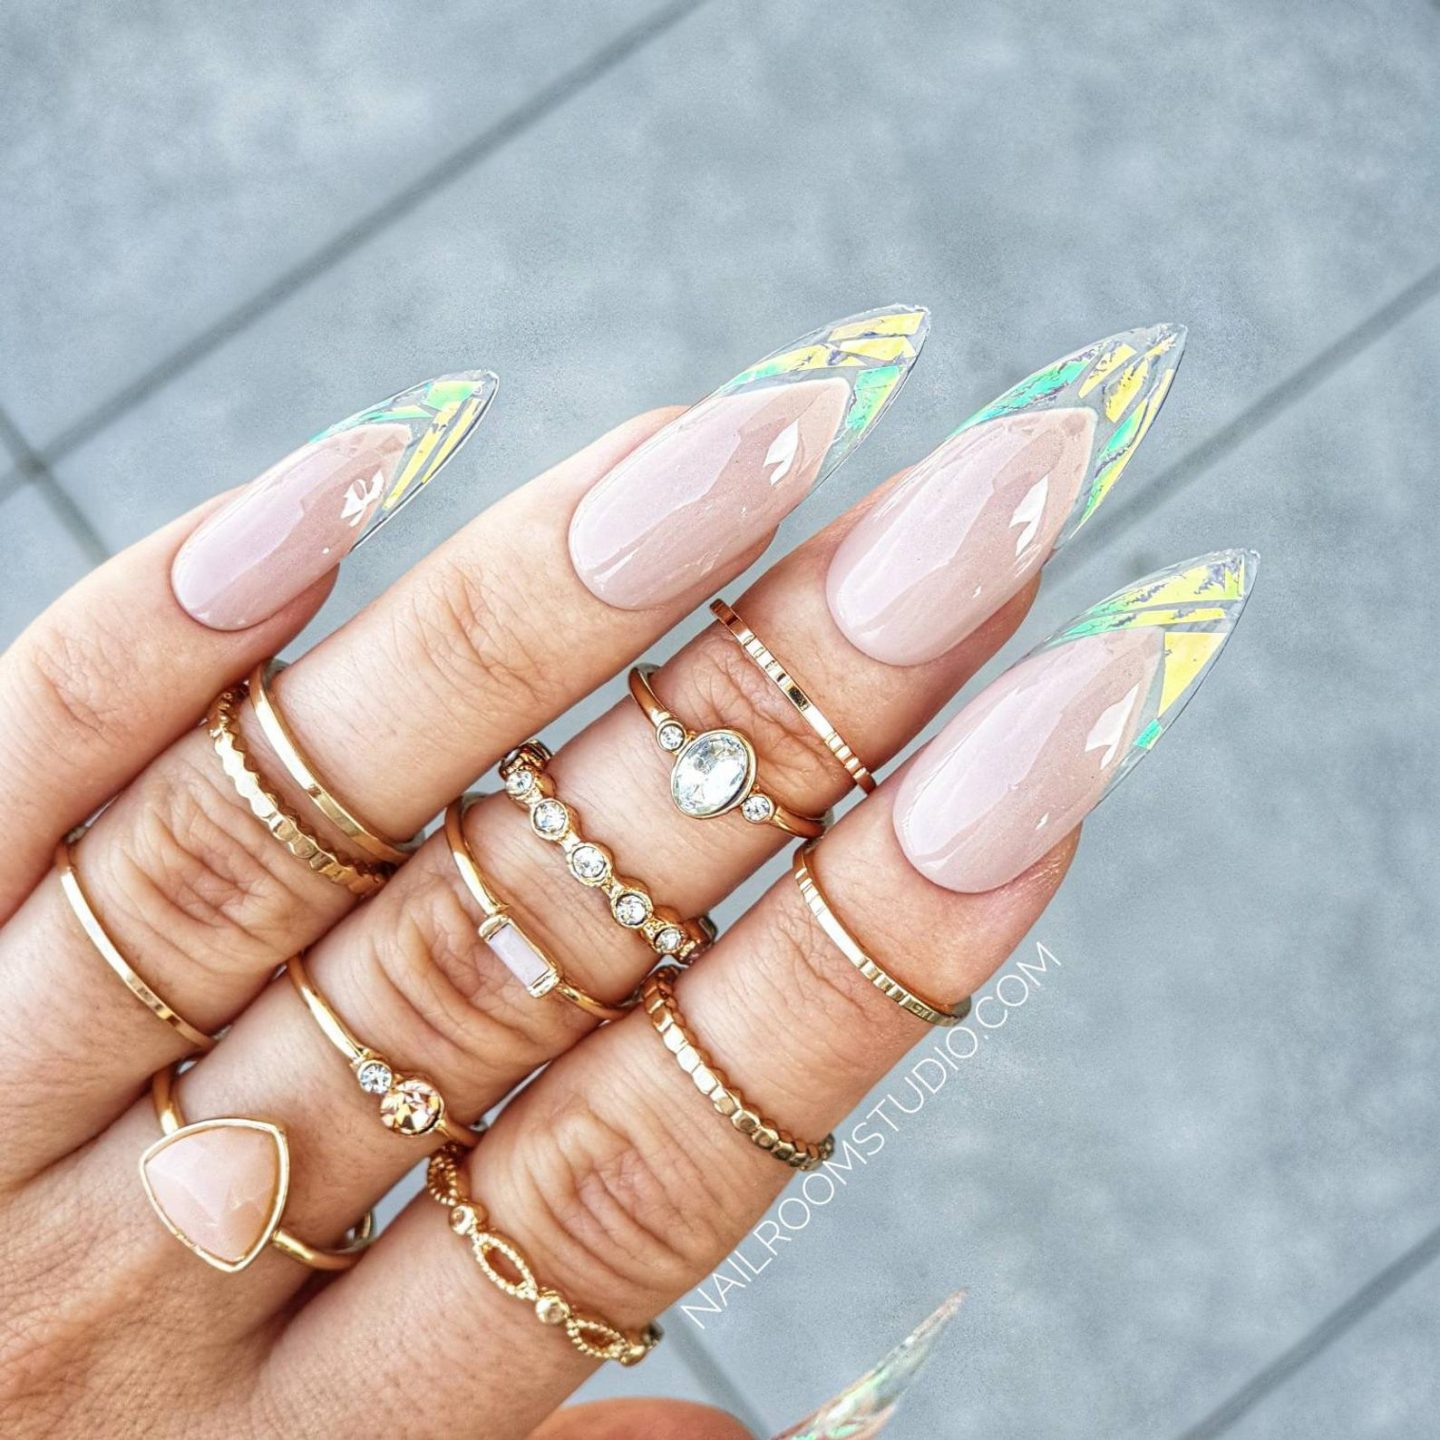 Holographic French nails